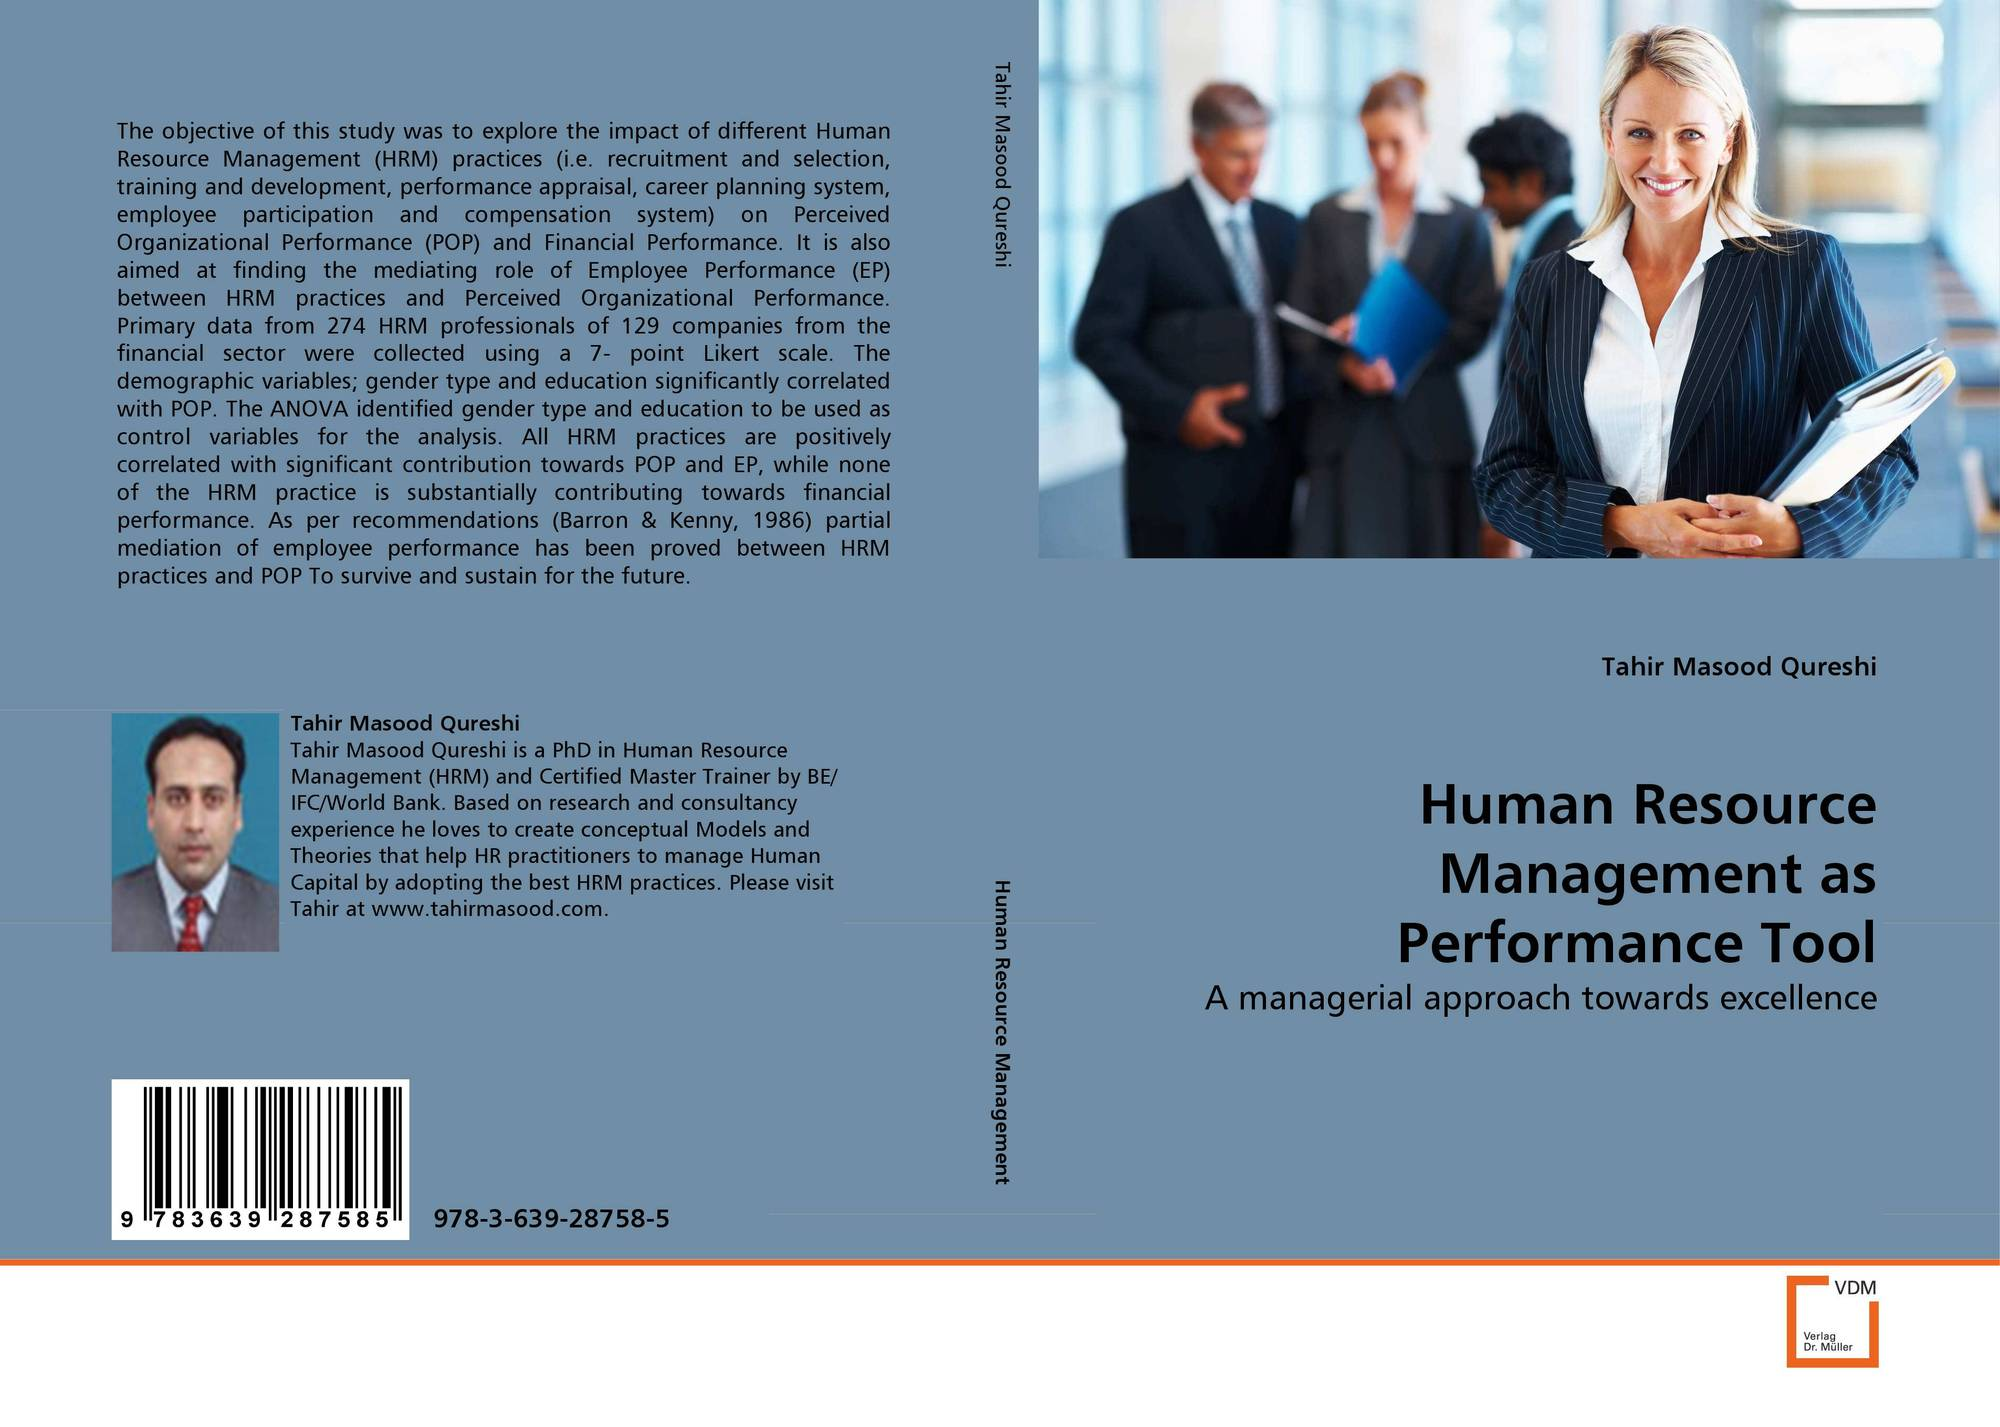 reviewing the human resource management approach adopted Keywords: hard approach, human resource management (hrm), real estate development, success, soft approach introduction human resource management (hrm) as a distinctive profession is so popularised that in recent times, a general consensusof the definition of the concept should exist or be adopted by hrm professionals.